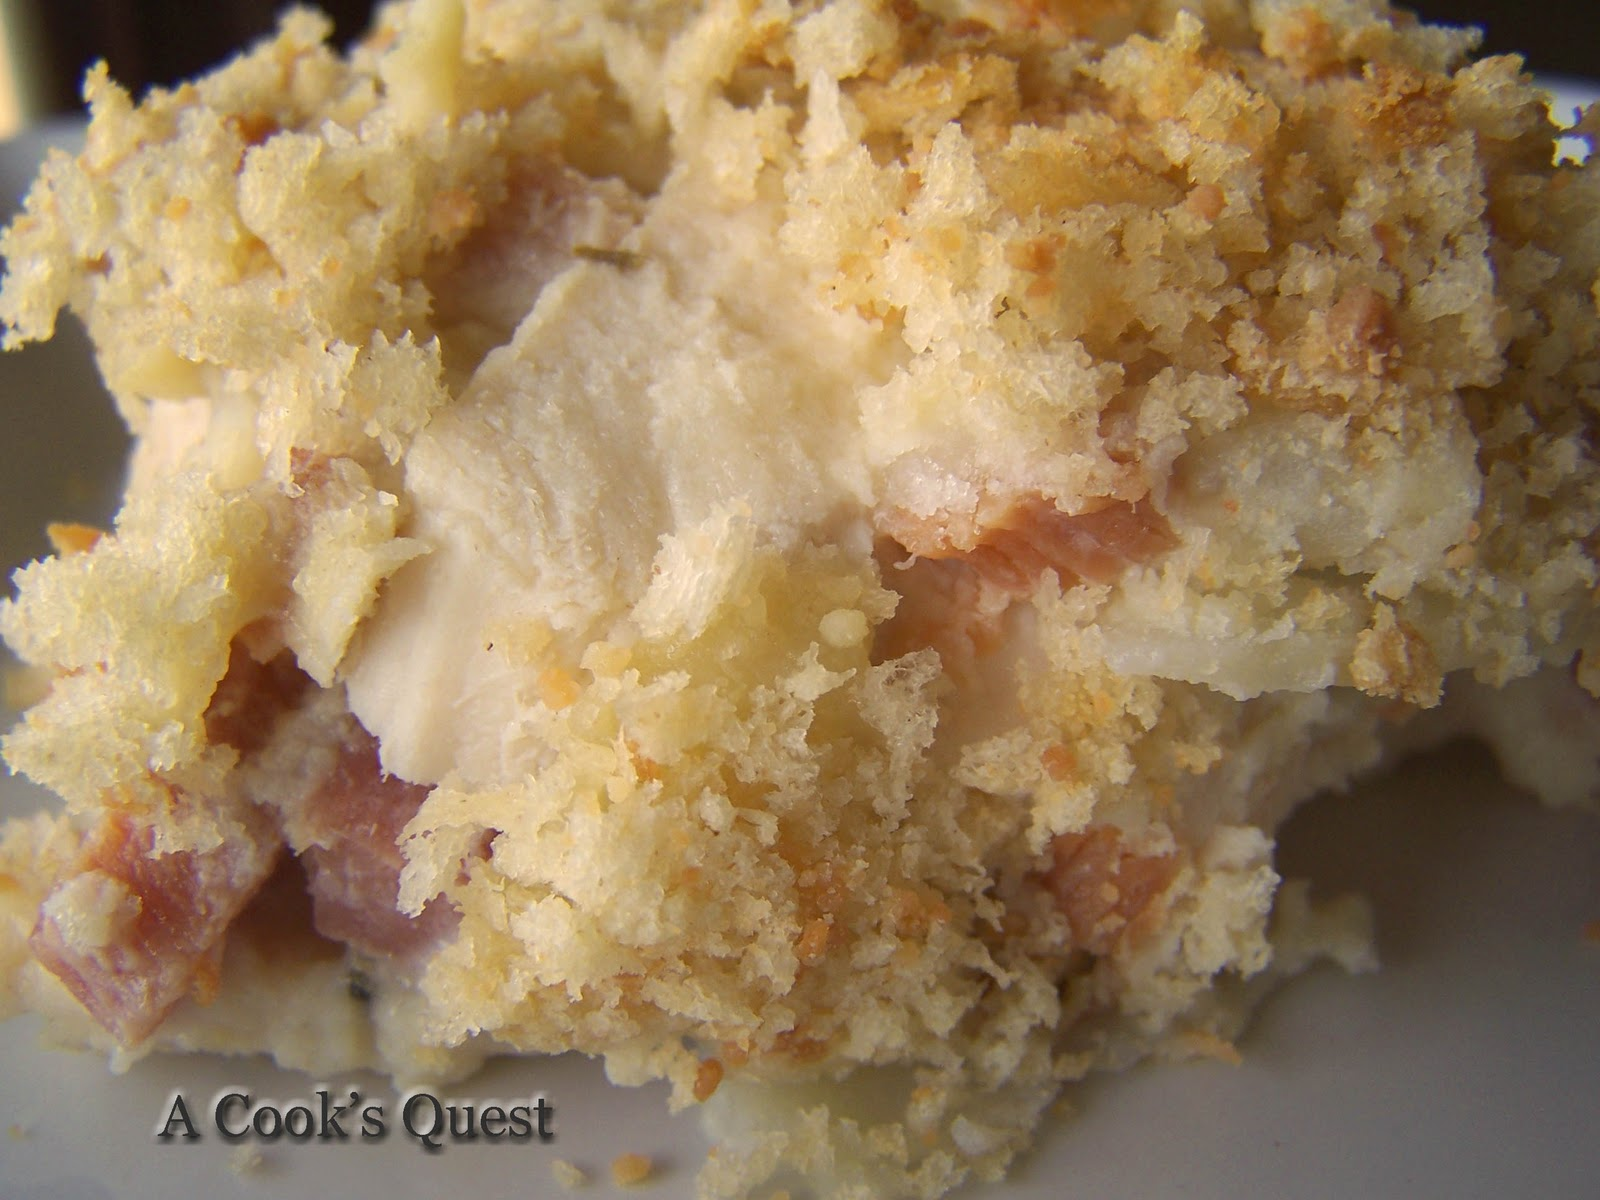 Cook's Quest: Chicken Cordon Bleu Casserole